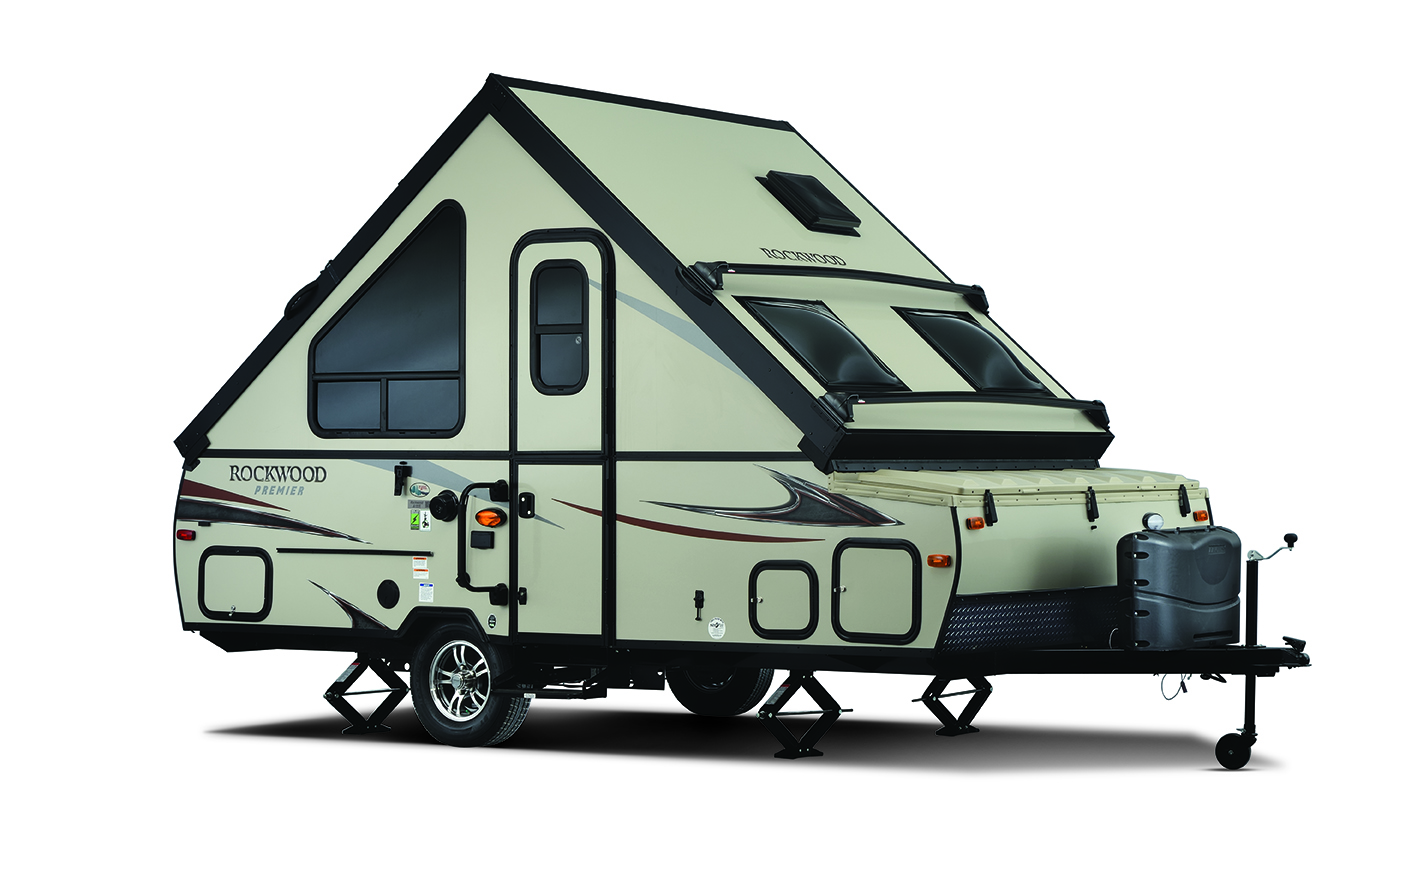 Top 5 Pop-Up Campers: Forest River Rockwood Hard Side High Wall Series